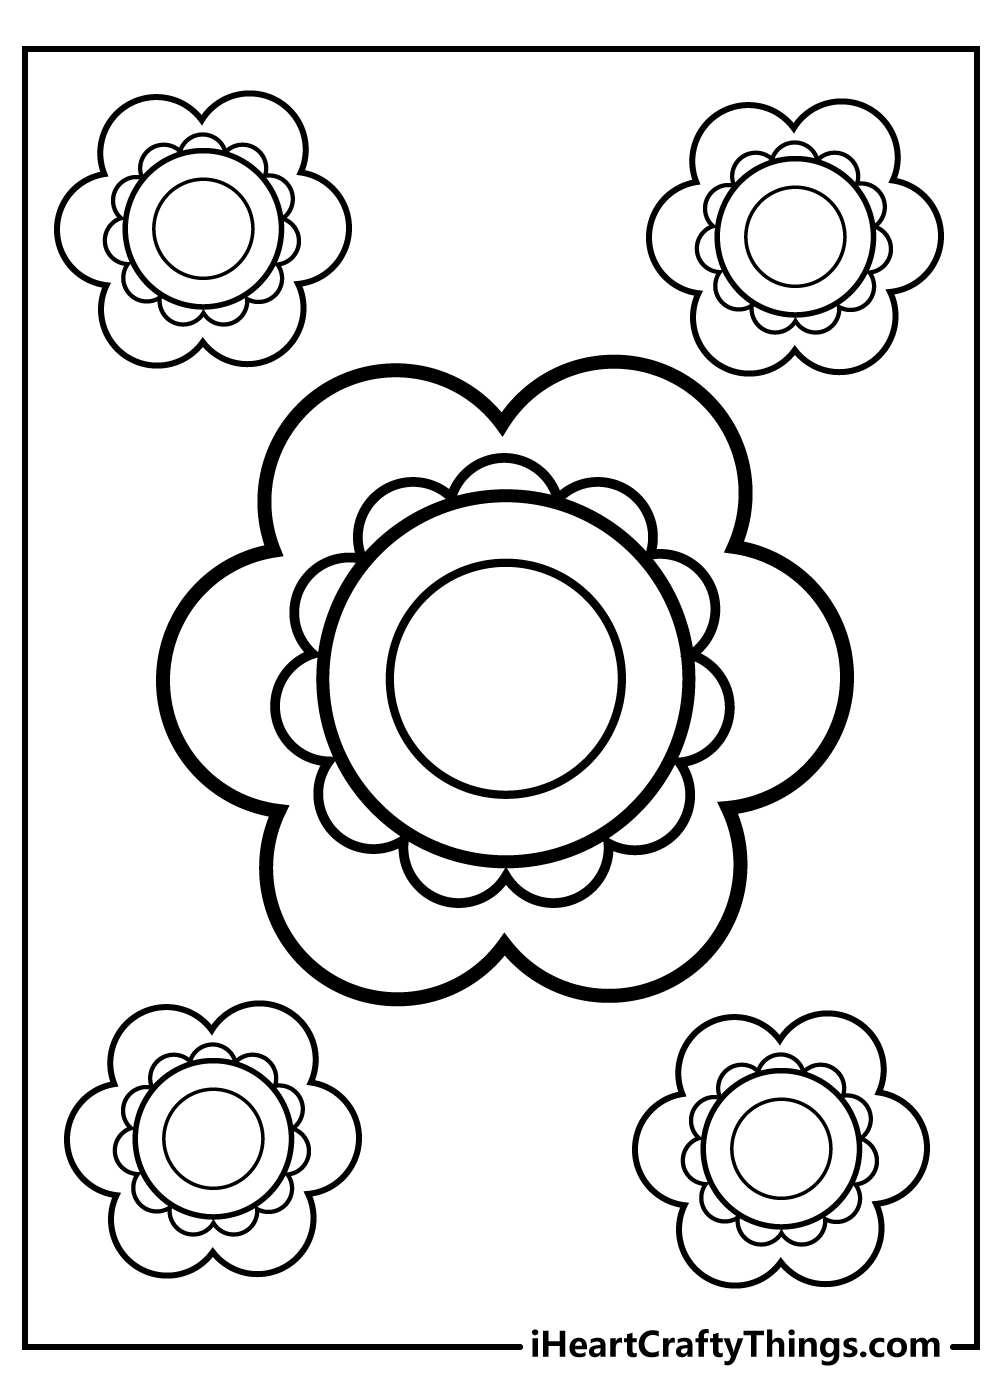 simple flower coloring sheet for kids